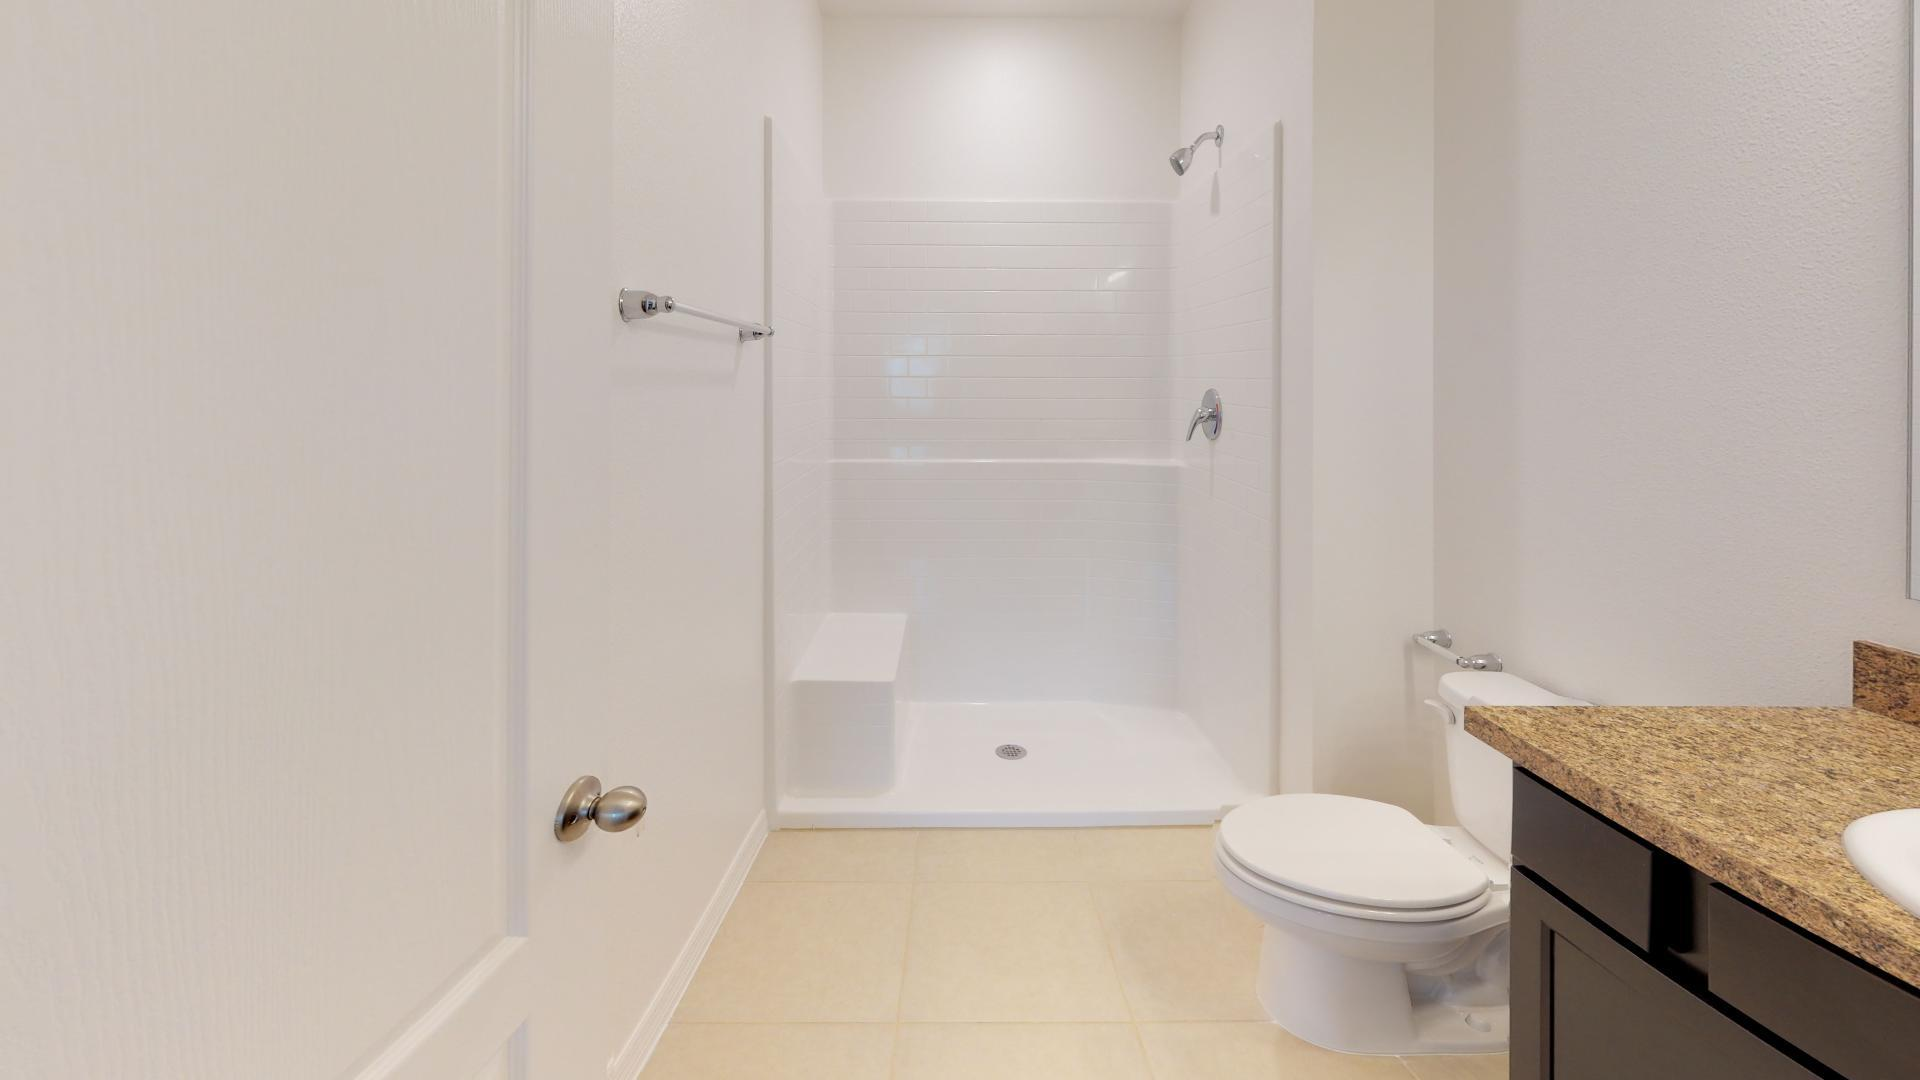 Bathroom featured in the Avella By Maronda Homes in Melbourne, FL